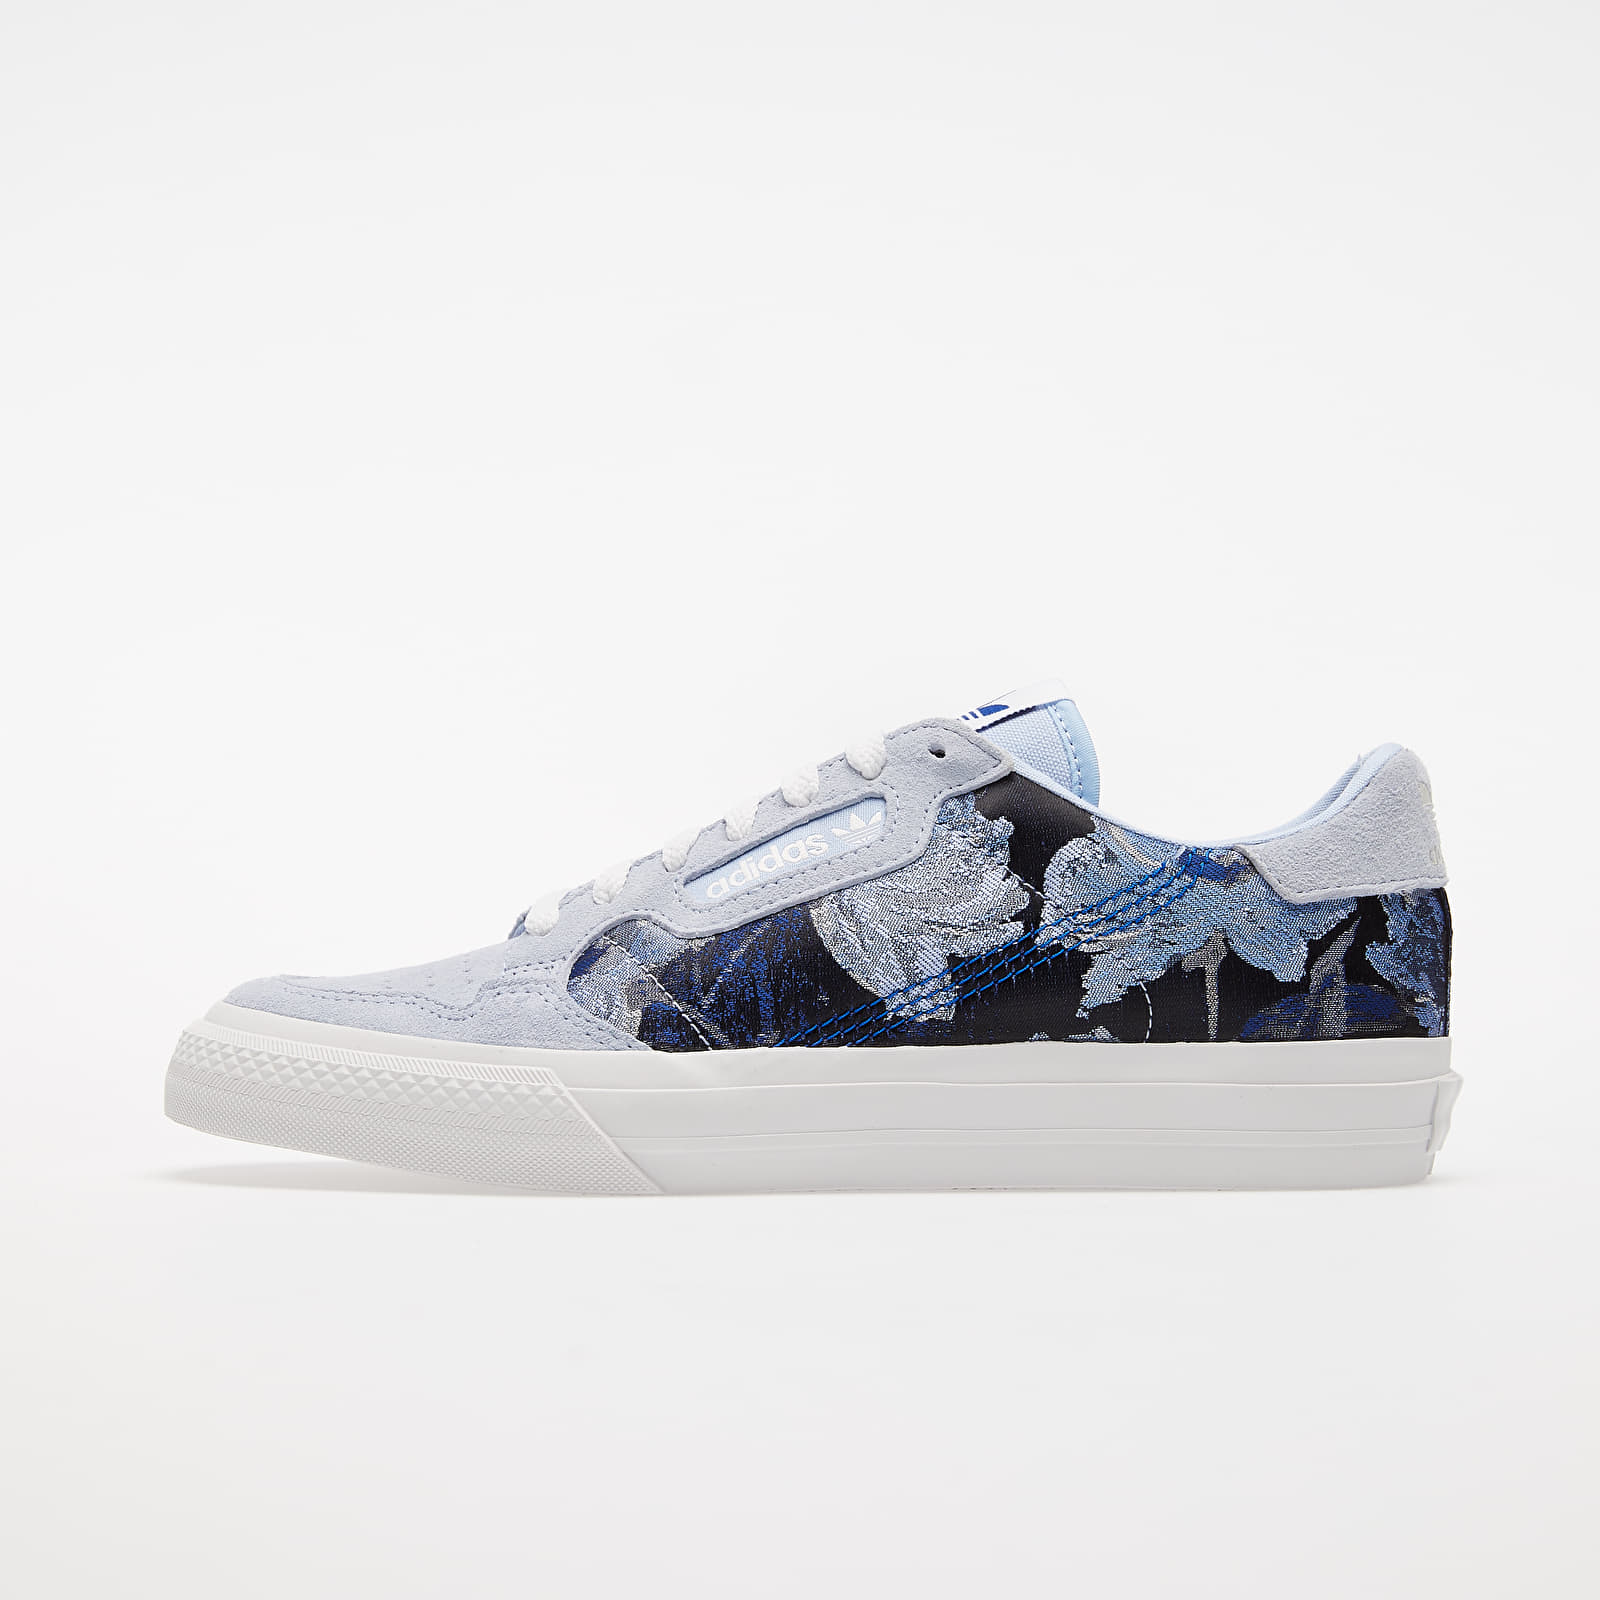 Chaussures et baskets femme adidas Continental Vulc W Periwinkle/ Crystal White/ Royal Blue